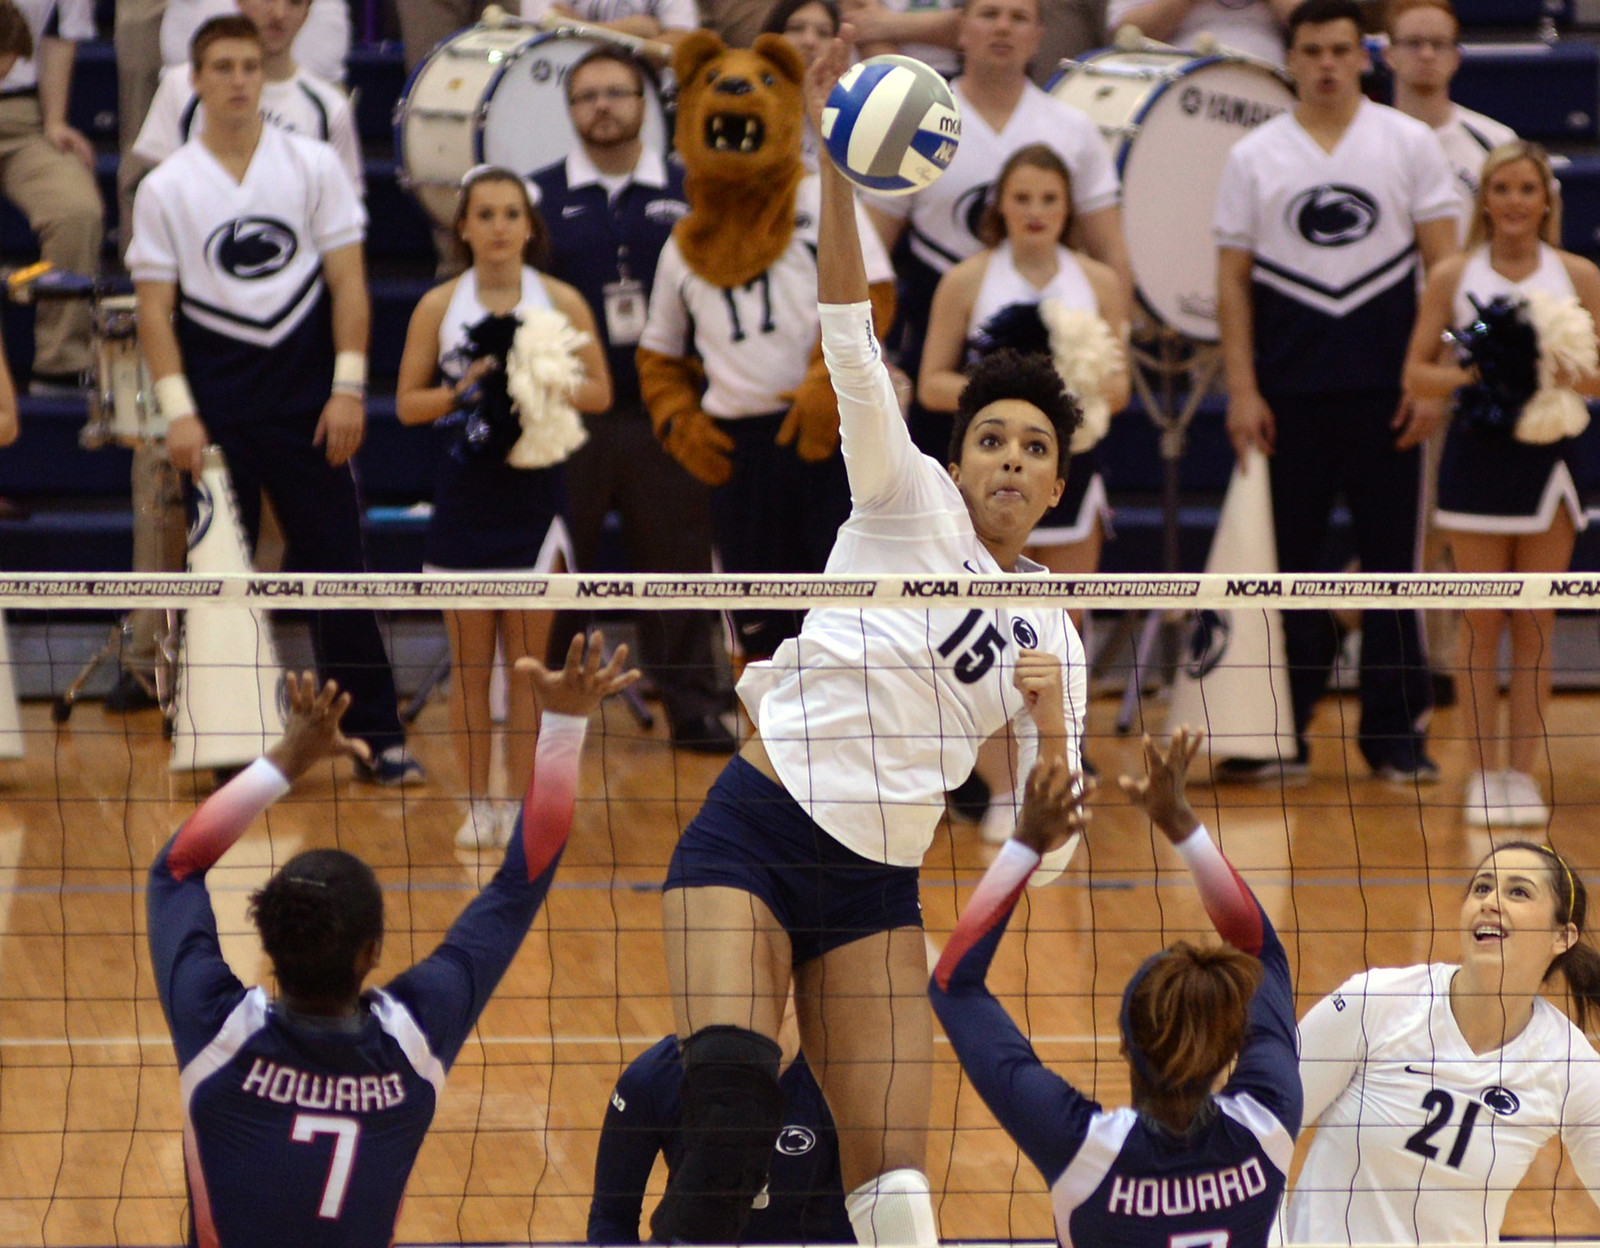 Penn State middle hitter Haleigh Washington attacks from the middle (Al Case)